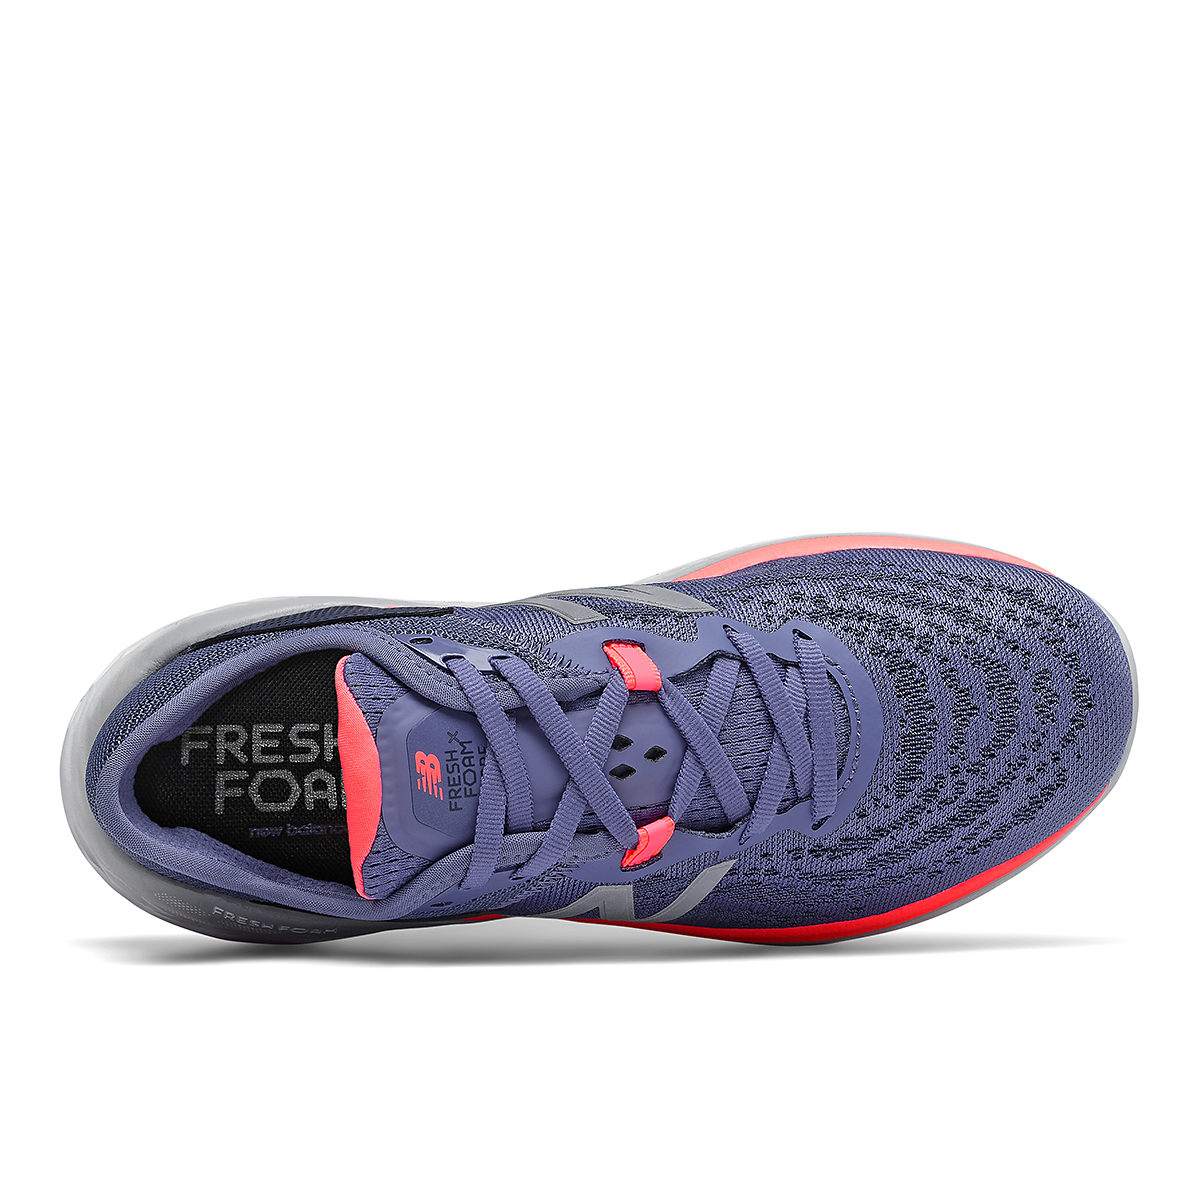 Women's New Balance Fresh Foam More V2 Running Shoe - Color: Magnetic Blue - Size: 5 - Width: Extra Wide, Magnetic Blue, large, image 3